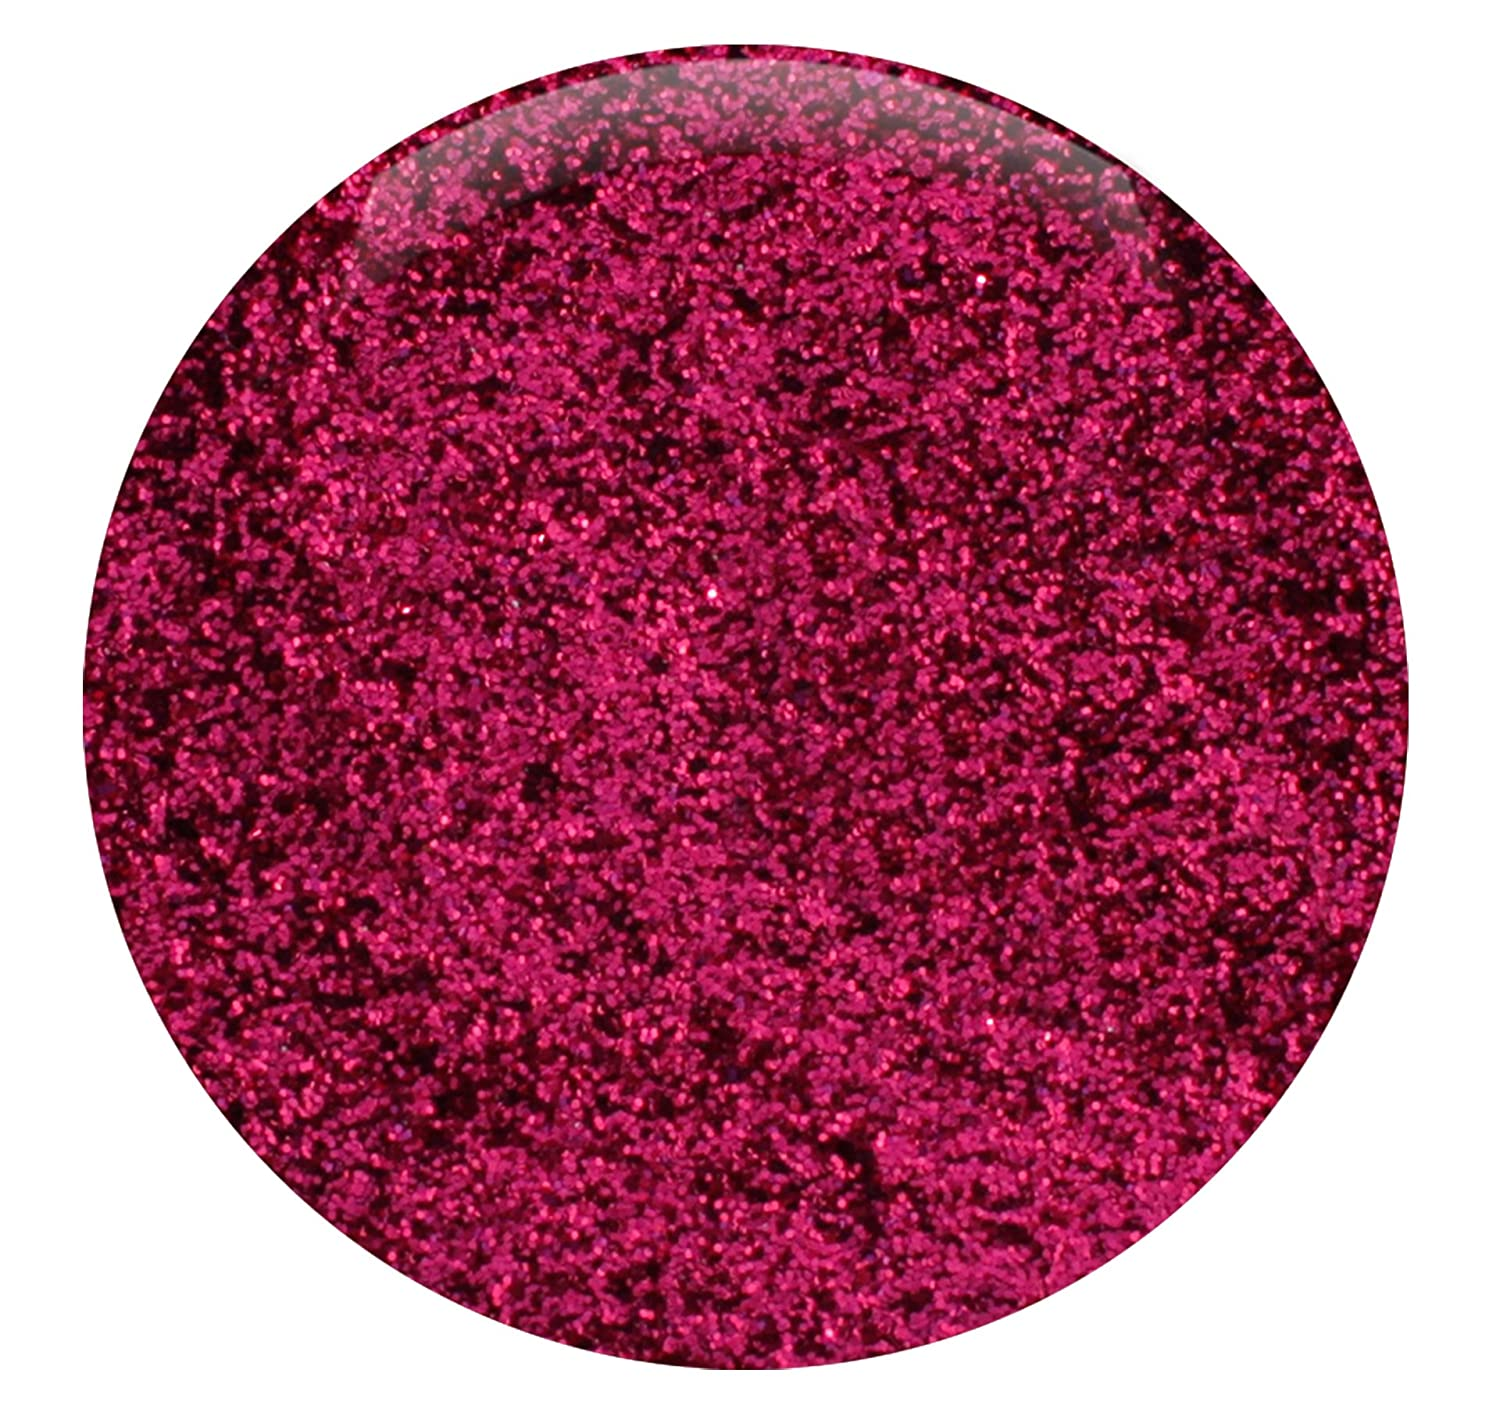 Emerald Green - Fine Glitter Powder .008 - 1/2 (lb) pound packaged In a thick 6 ml bag - Bulk and Wholesale Glitter Made In the USA! Glitties Nail Art